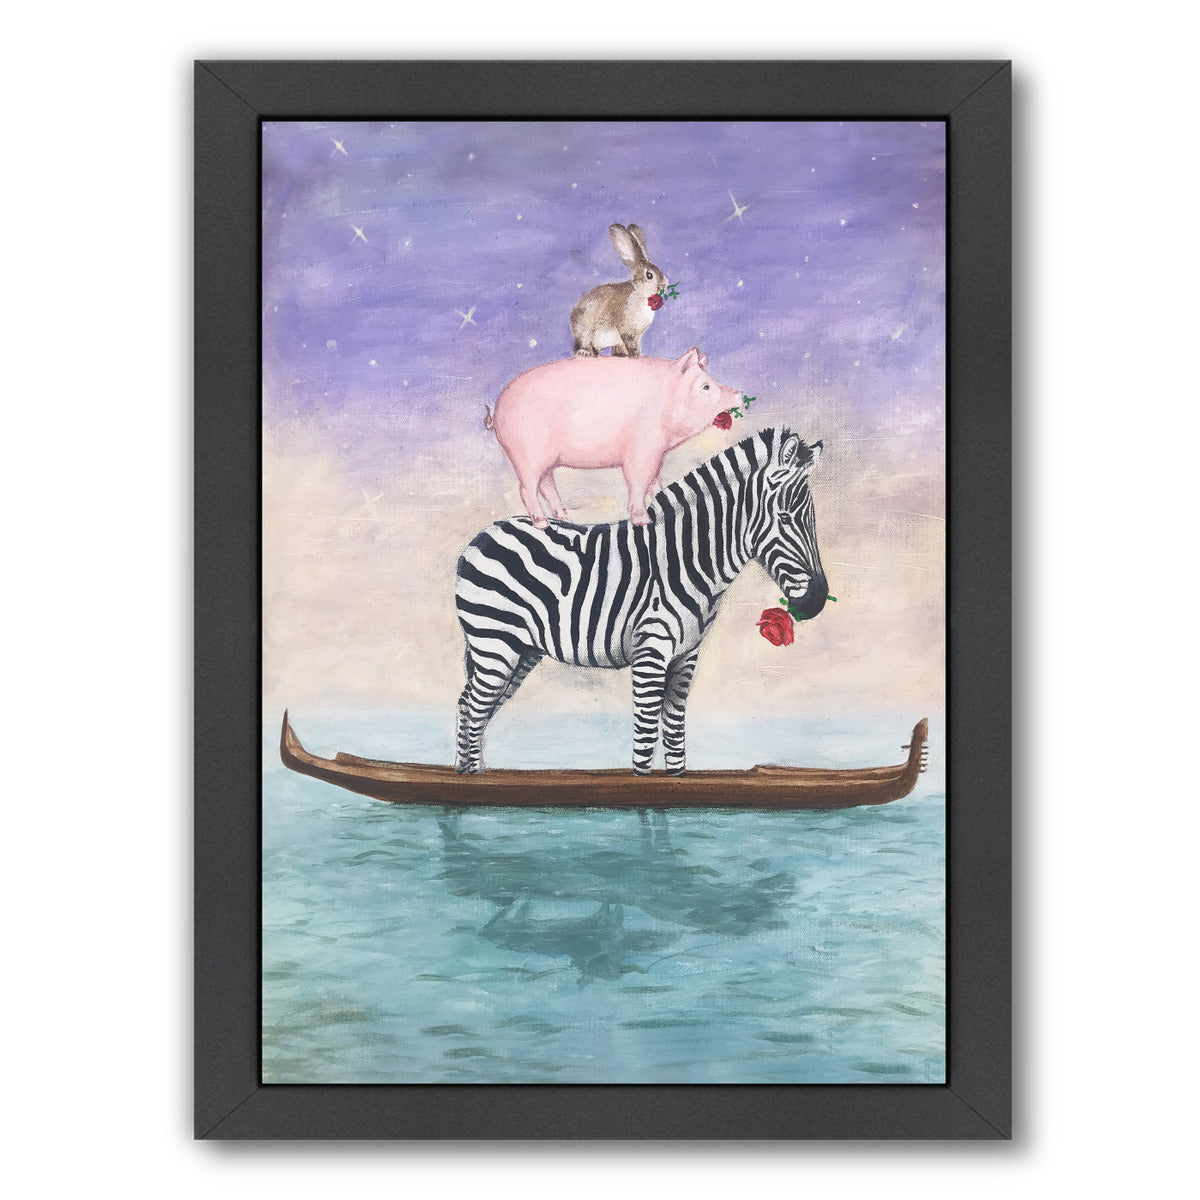 Noah Forgot Some Animals By Coco De Paris - Black Framed Print - Wall Art - Americanflat